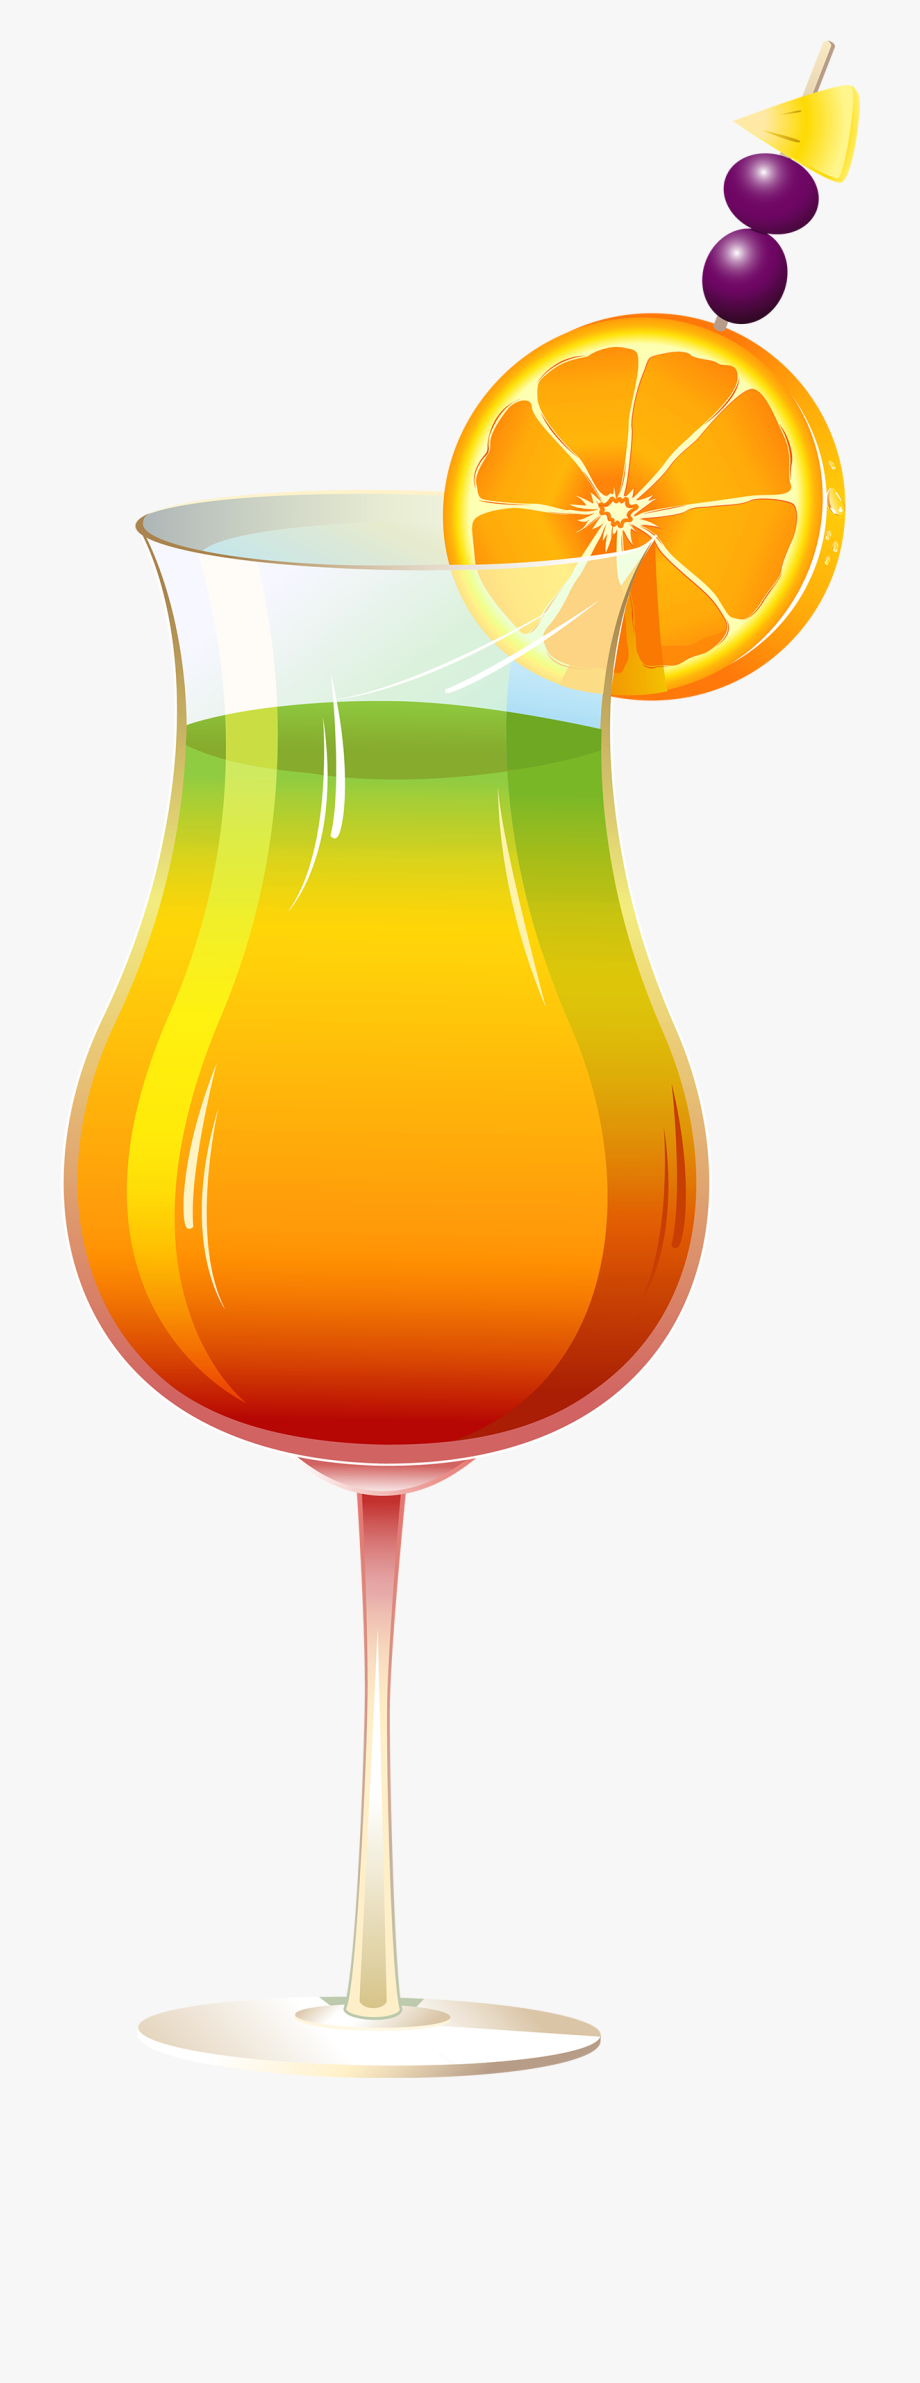 Exotic Cocktail Png Clipart.